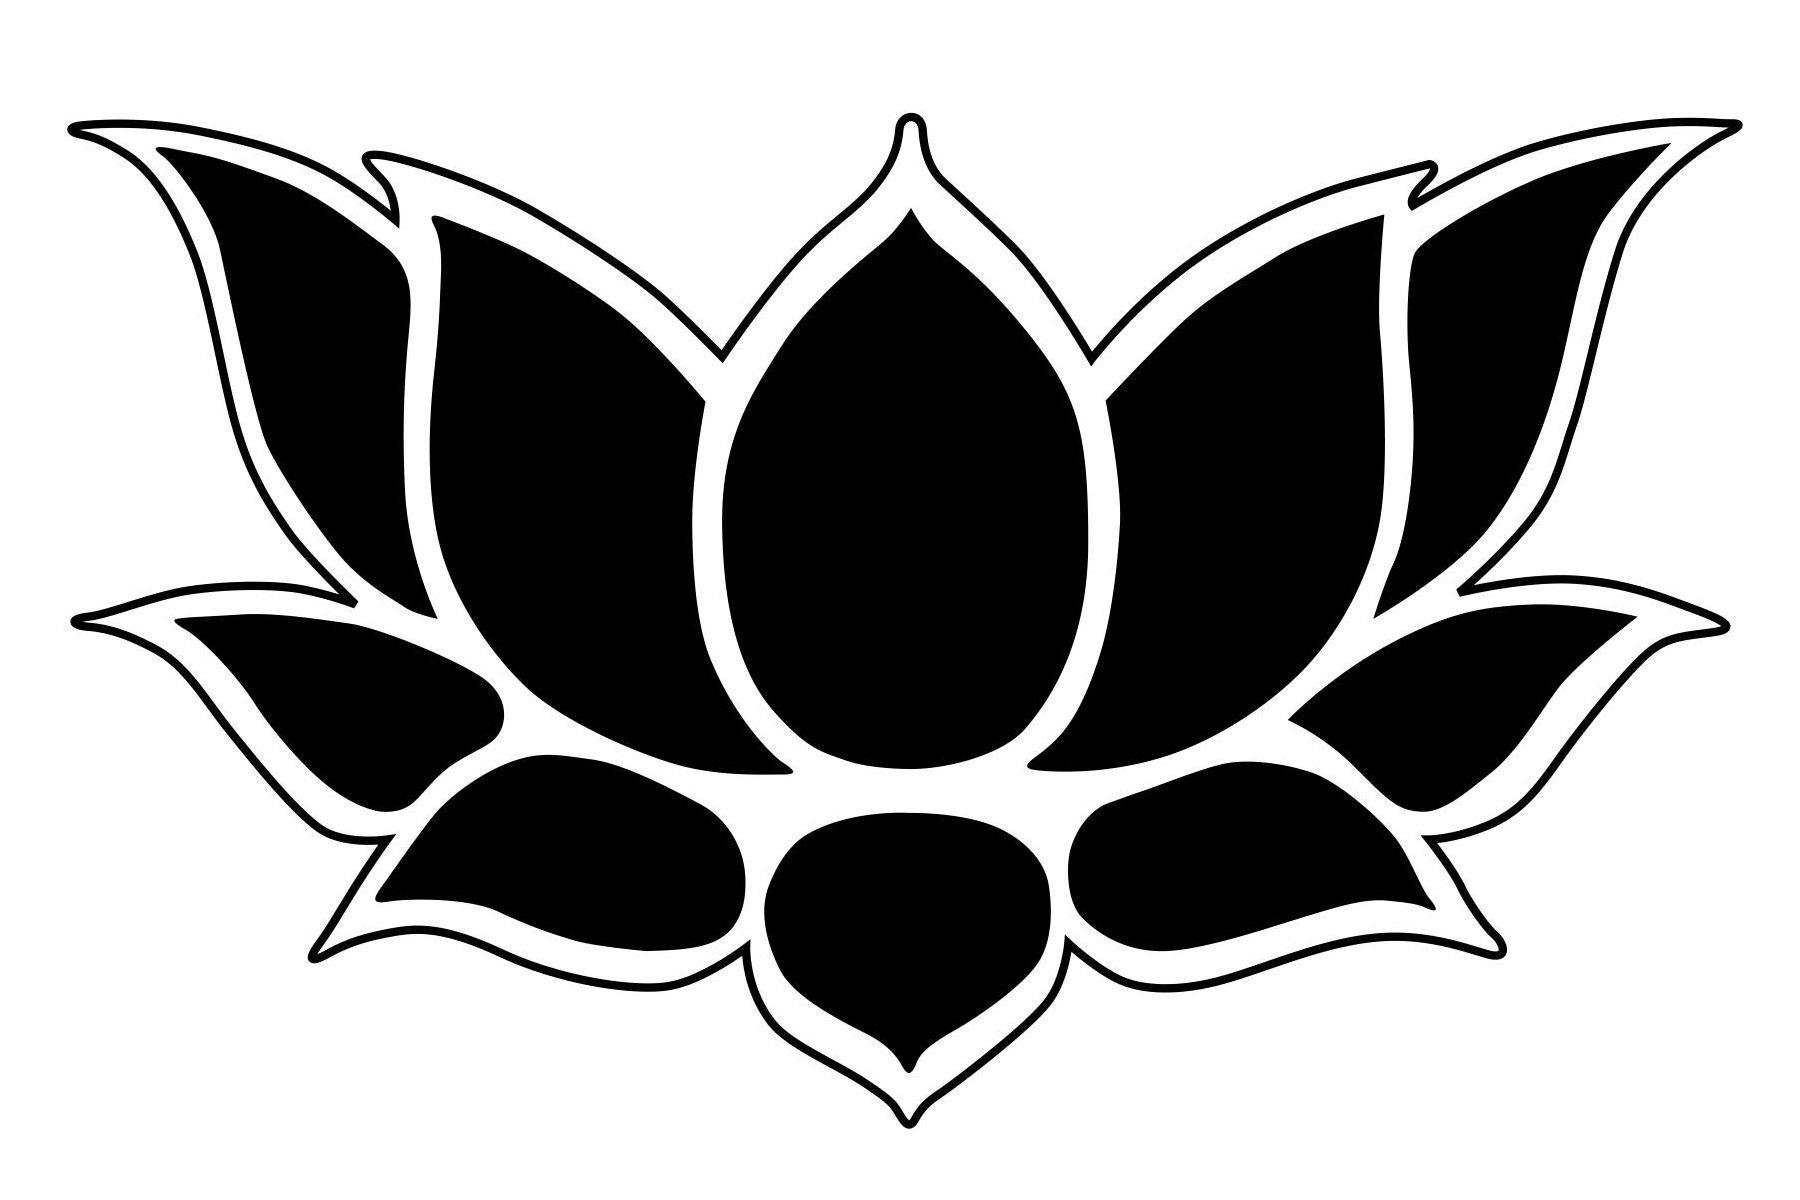 lotus flower stencil related keywords suggestions lotus flower